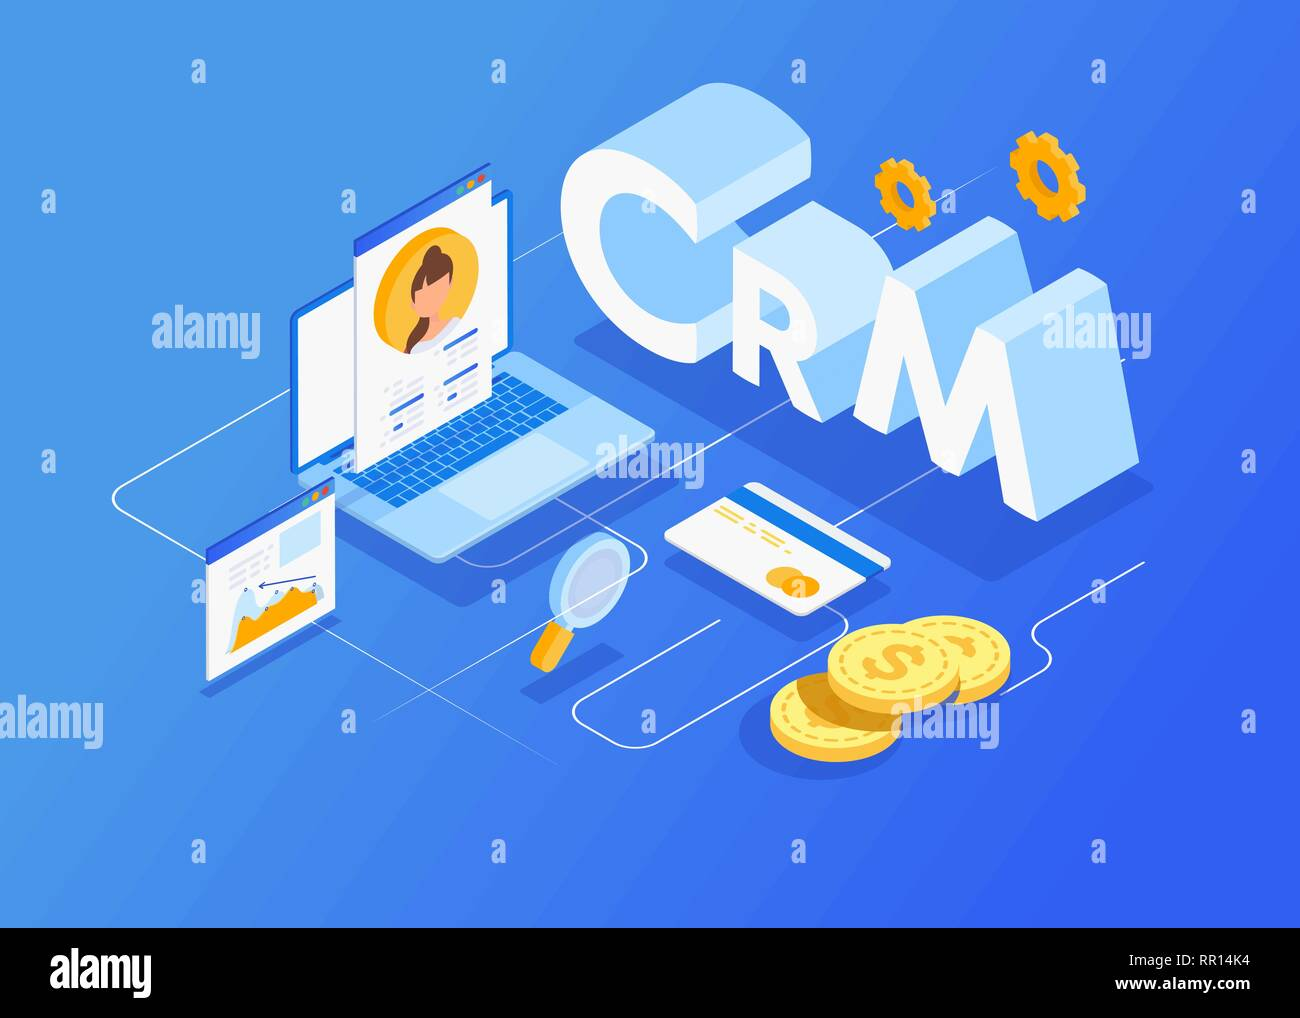 Isometric customer relationship management concept background. Company interaction approach. - Stock Image